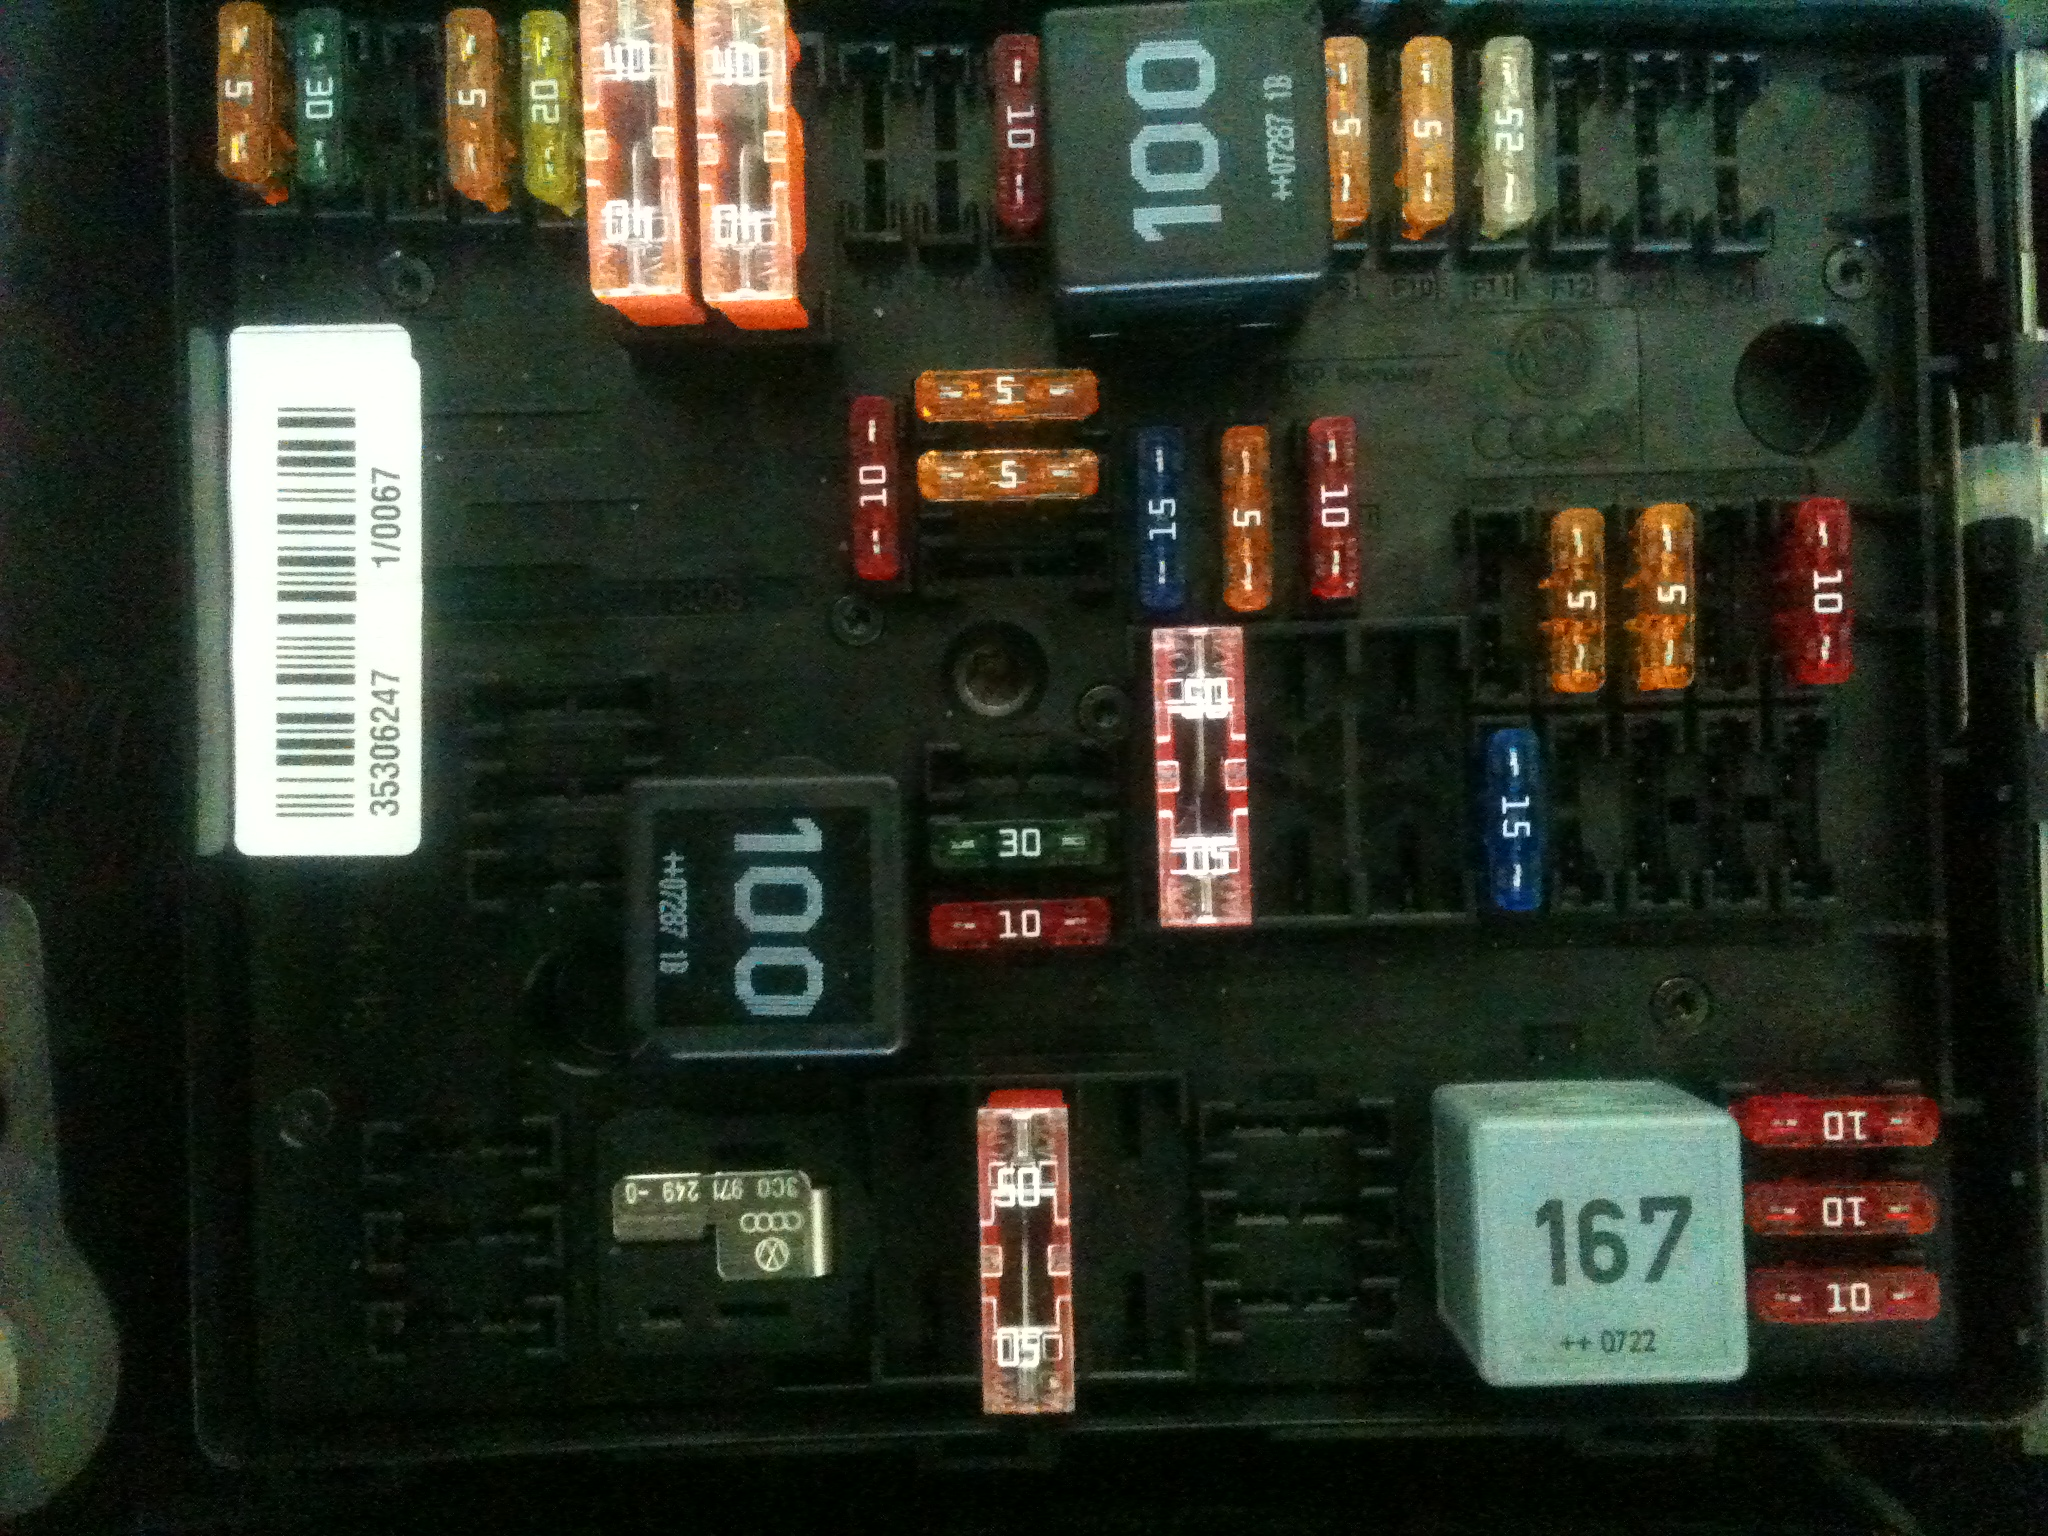 Volkswagen 2008: I just removed a 20 amp fuse from panel B